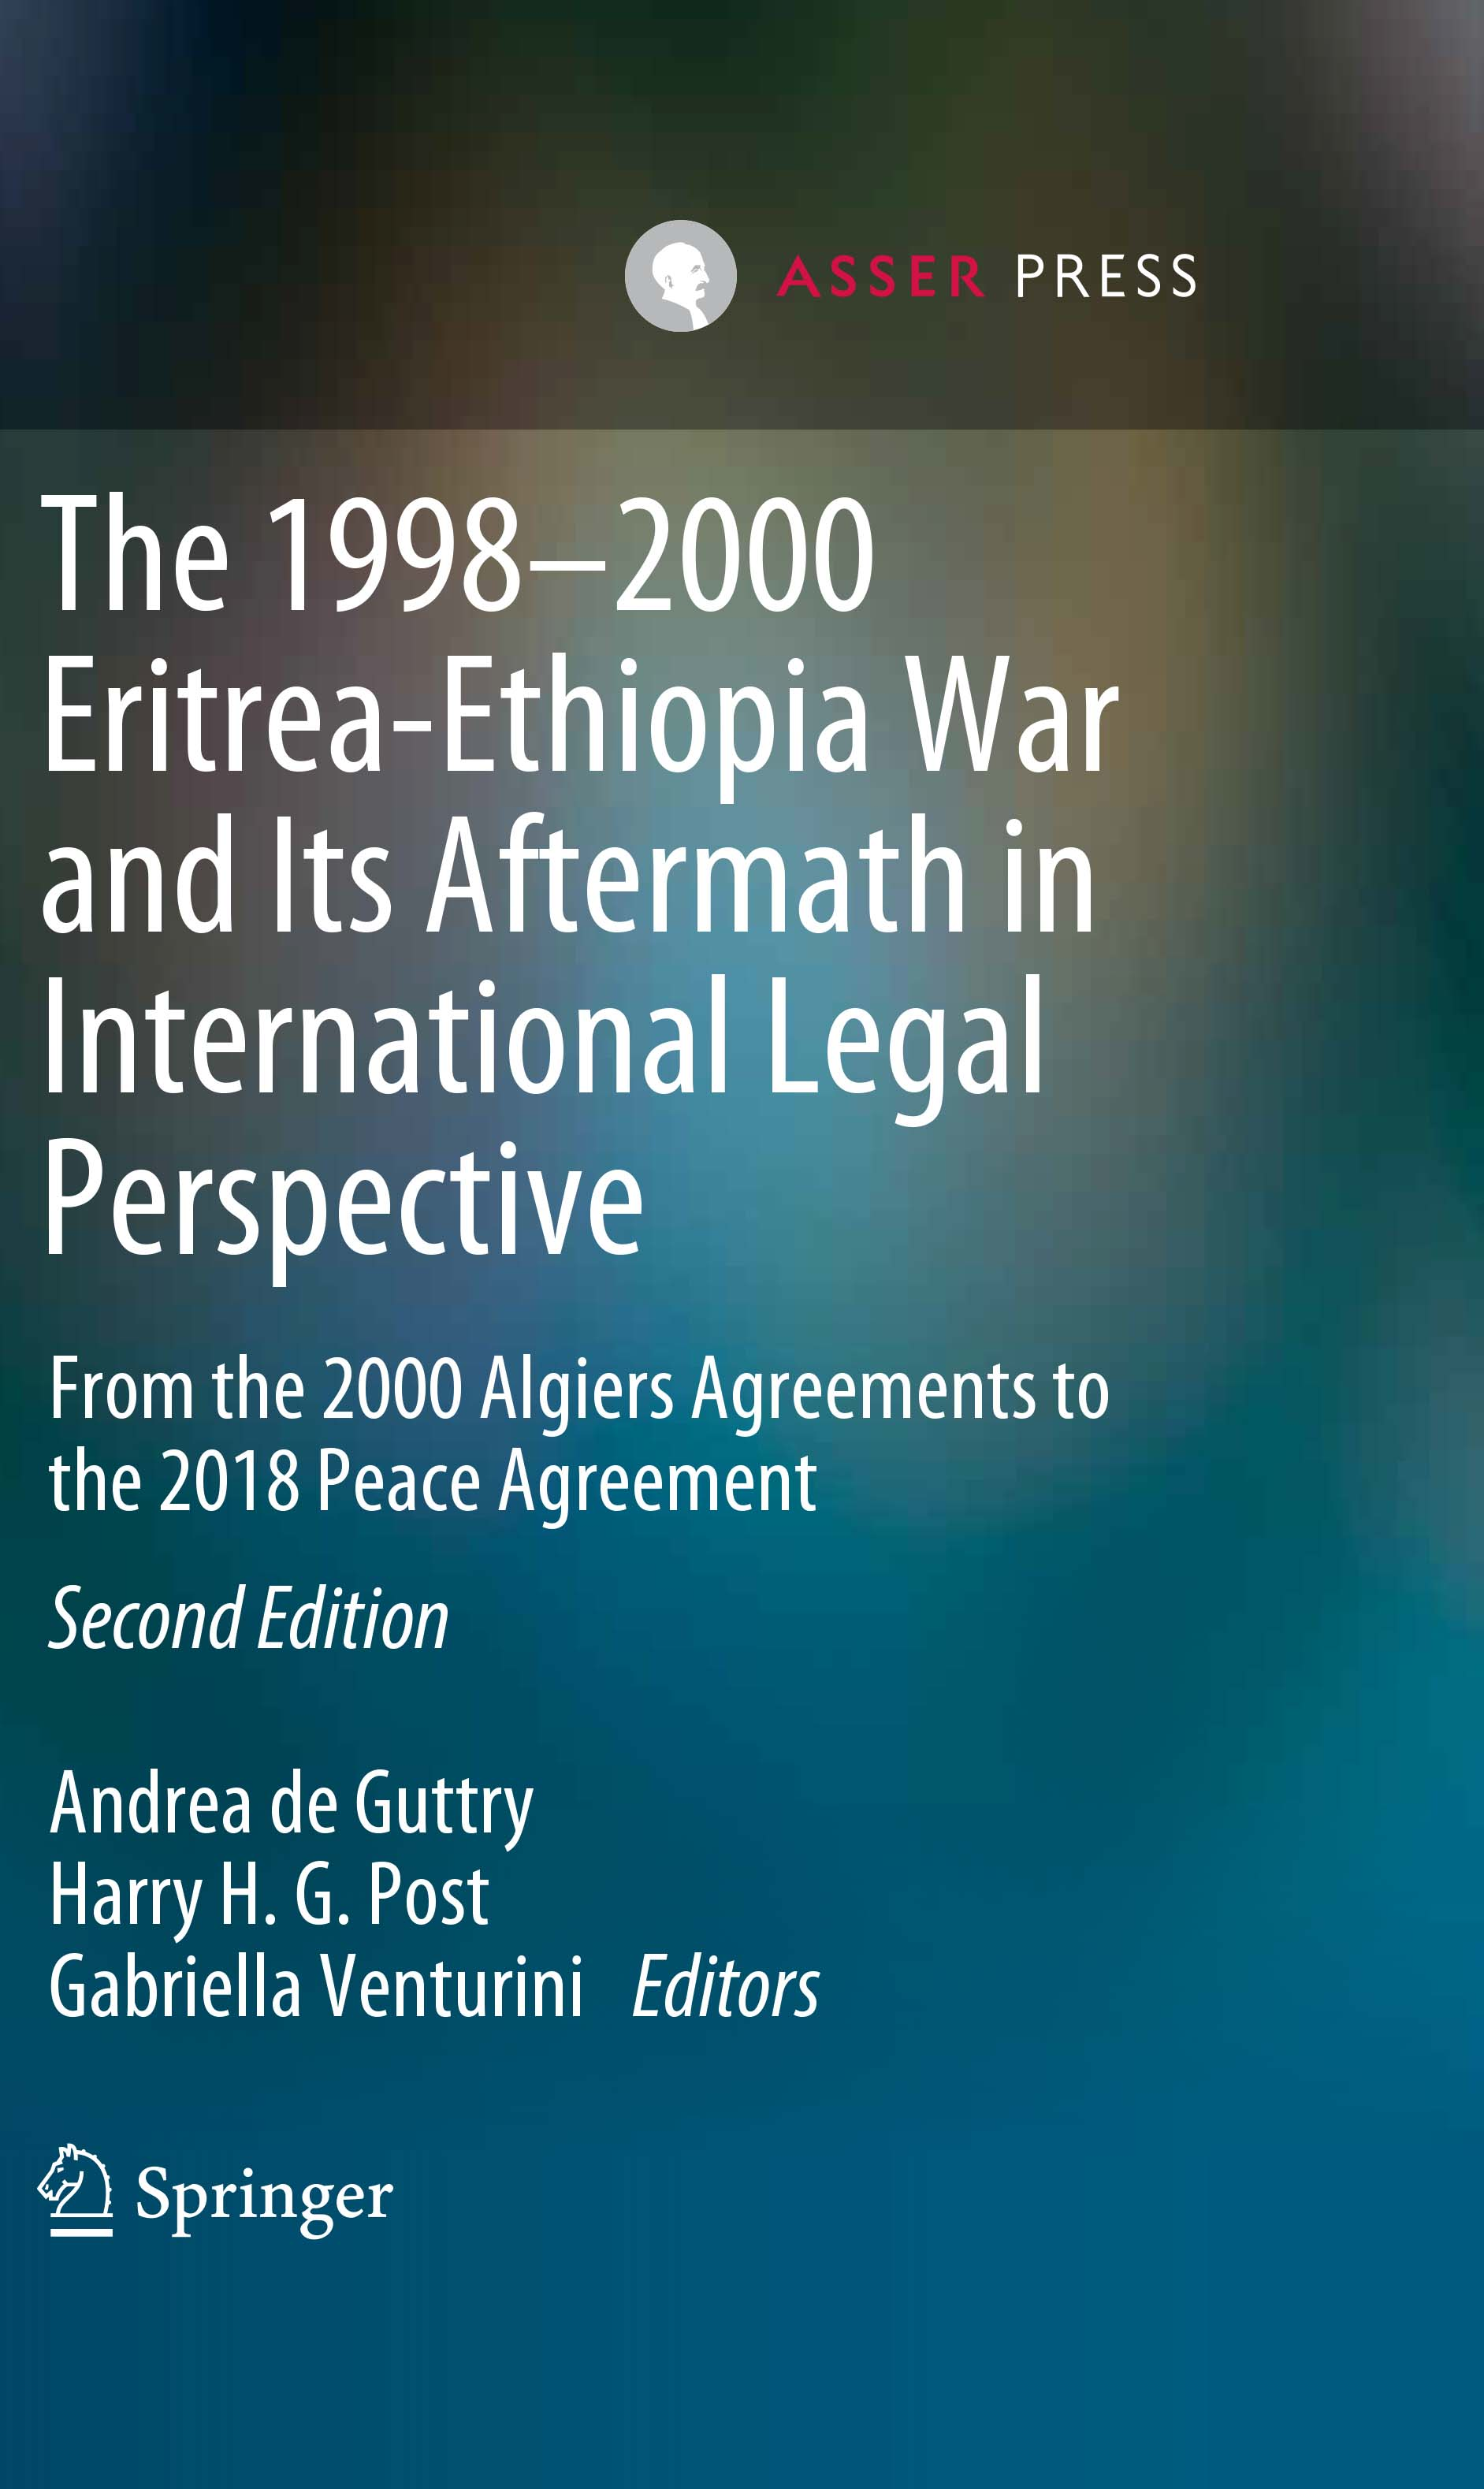 The 1998-2000 Eritrea-Ethiopia War and Its Aftermath in International Legal Perspective - From the 2000 Algiers Agreements to the 2018 Peace Agreement